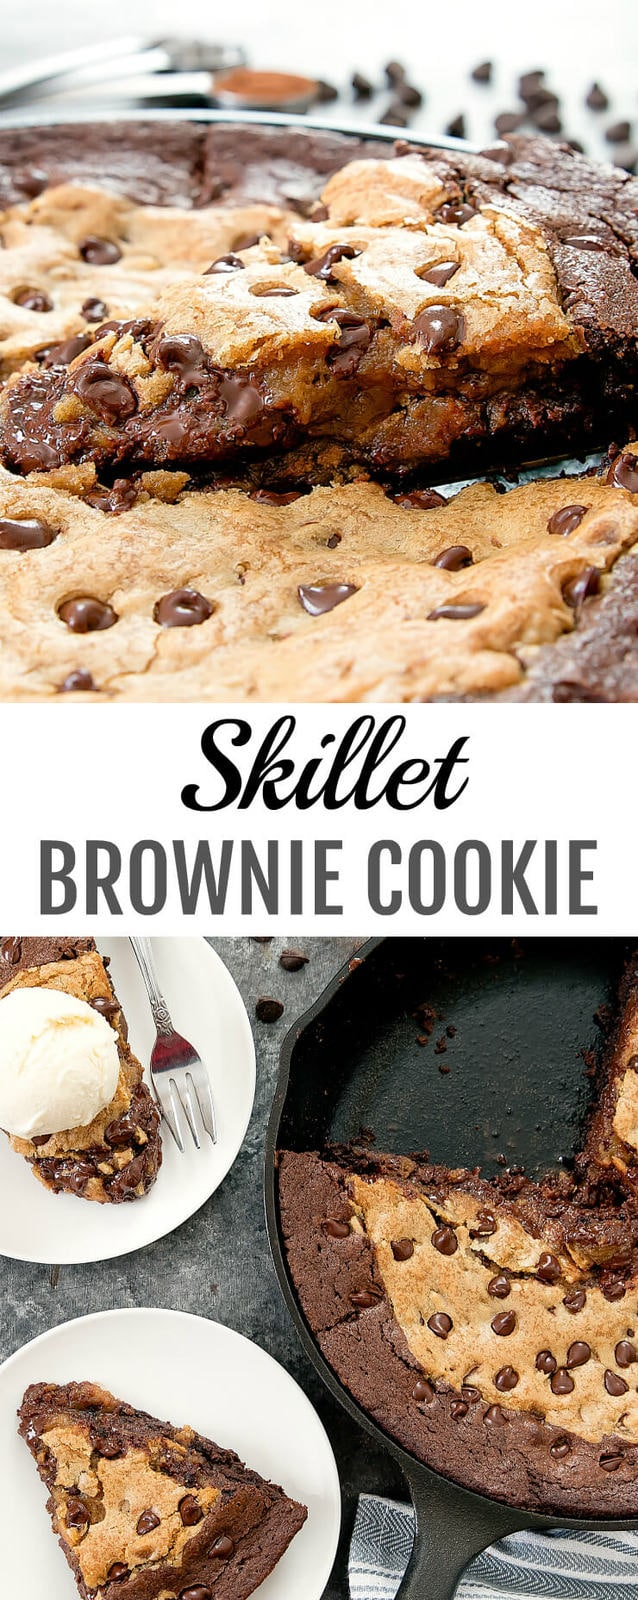 Skillet Brownie Chocolate Chip Cookie. Combining two desserts in one. Made from scratch with two one-bowl recipes.